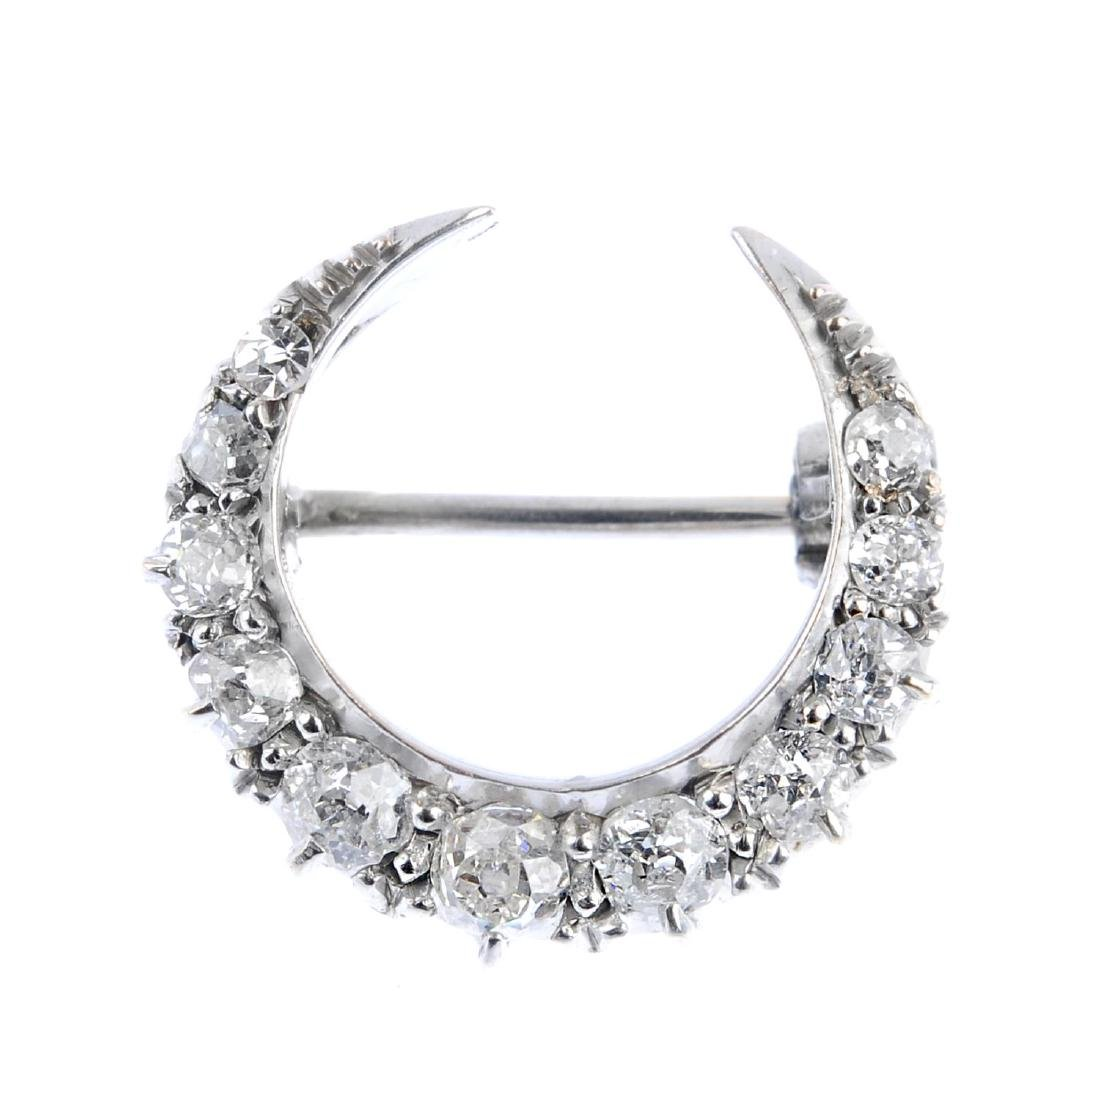 An early 20th century gold diamond crescent brooch.